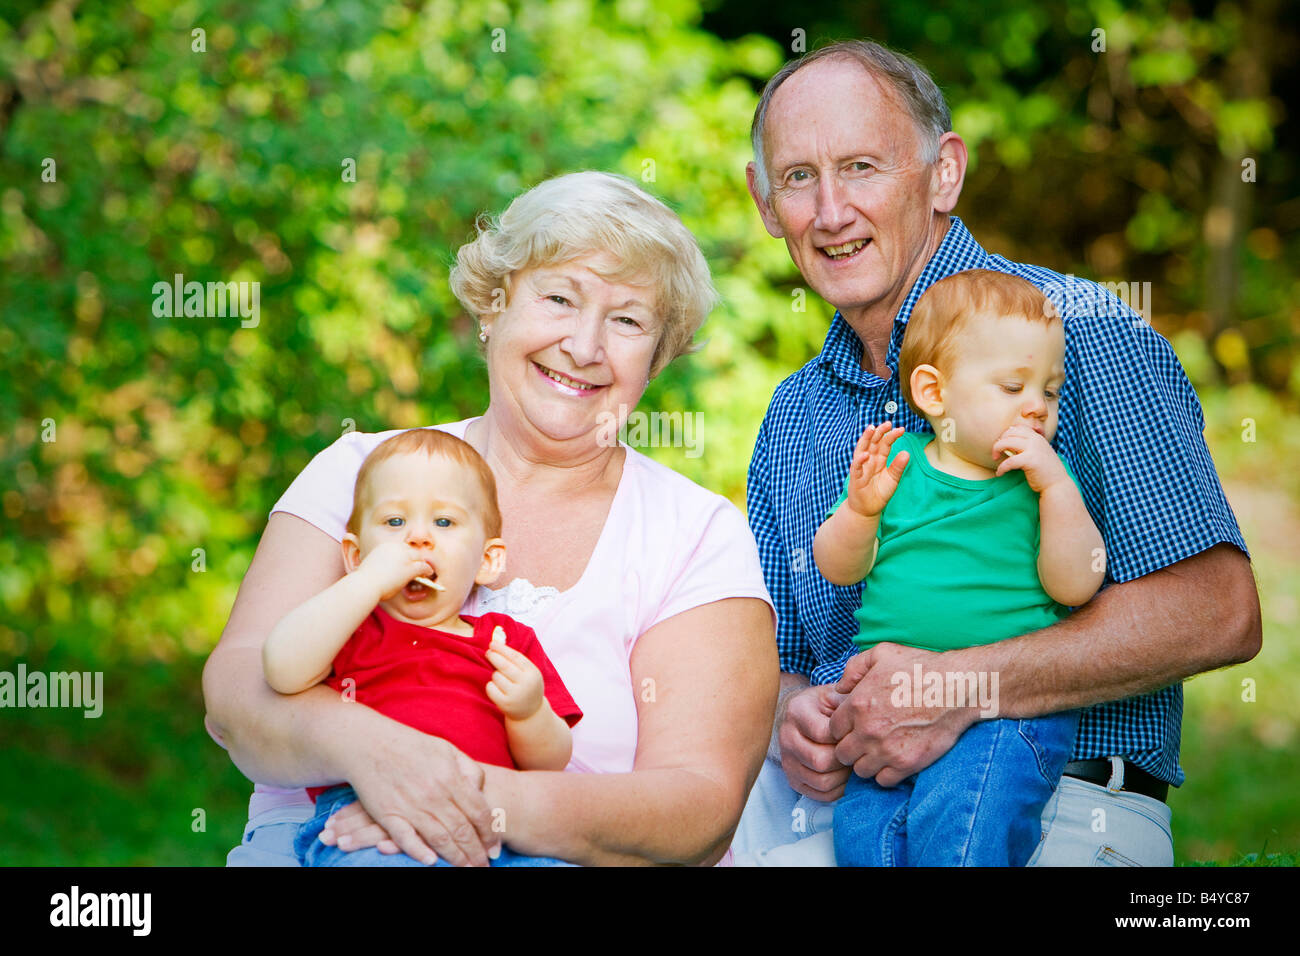 Holding redheaded twin grandsons with focus on happy grandparents - Stock Image